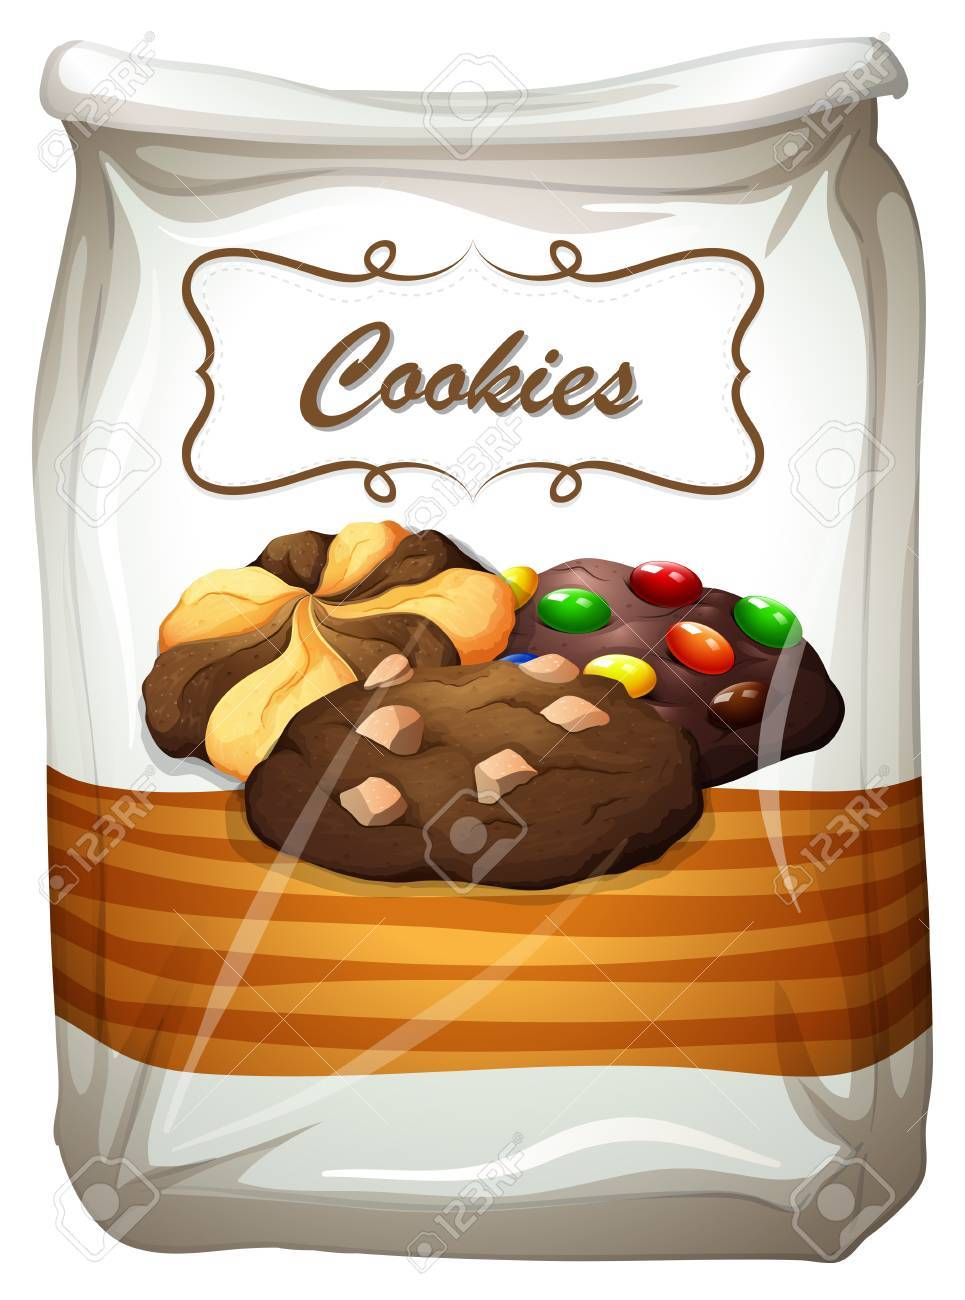 Cookies in white bag illustration.